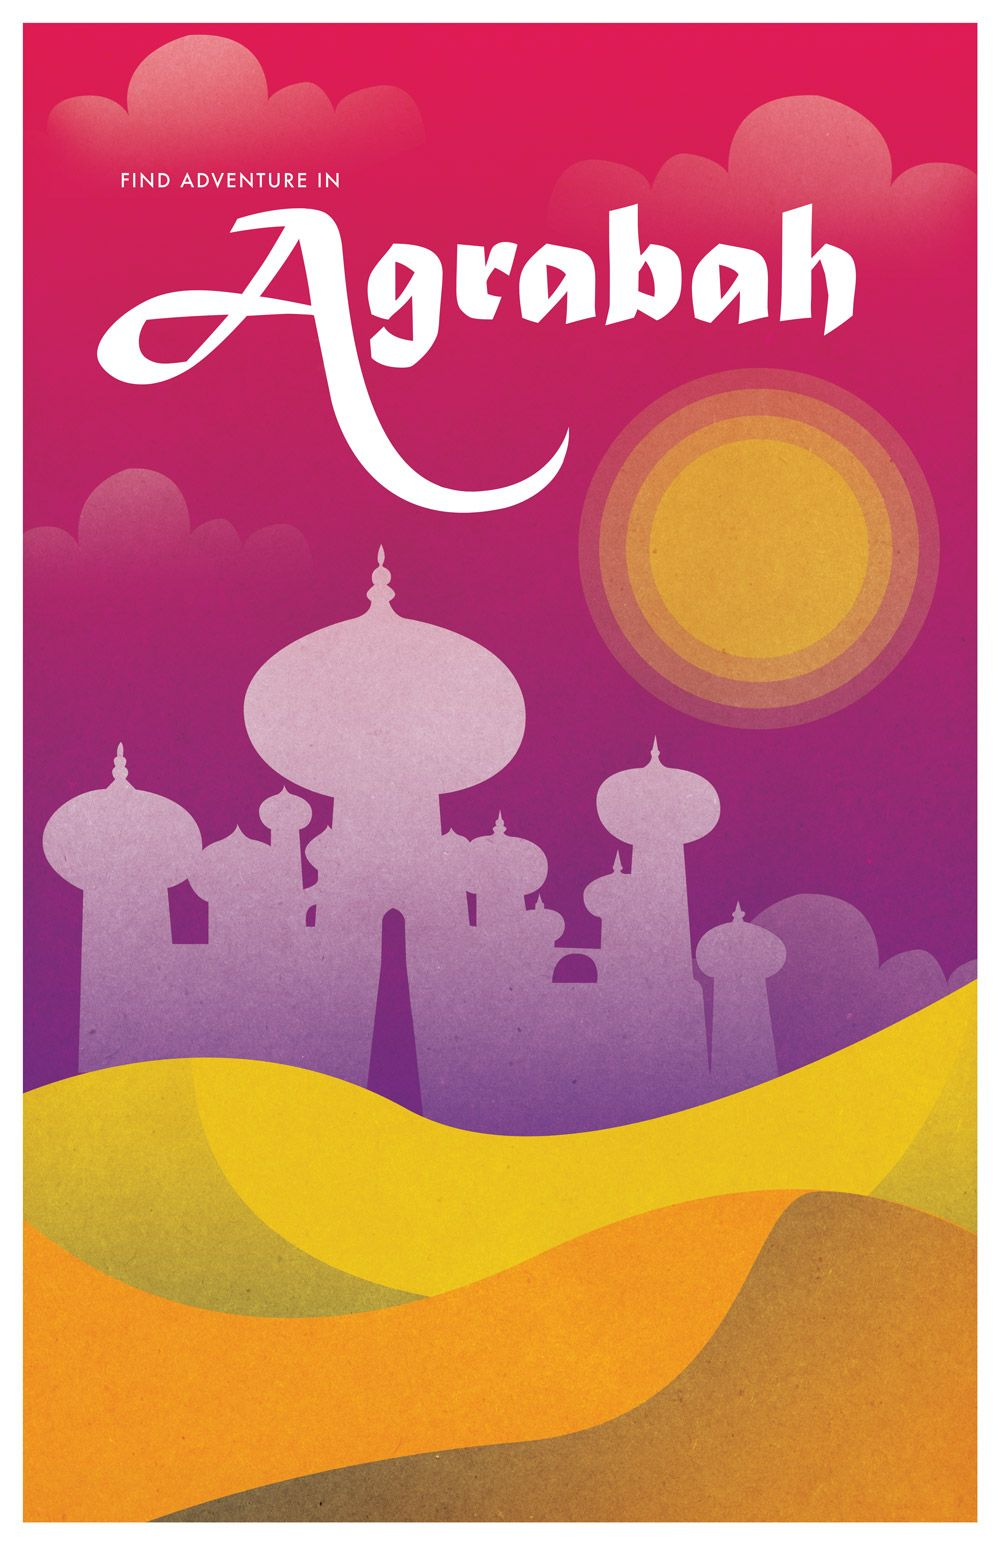 Explore the World with These Disney Travel Posters